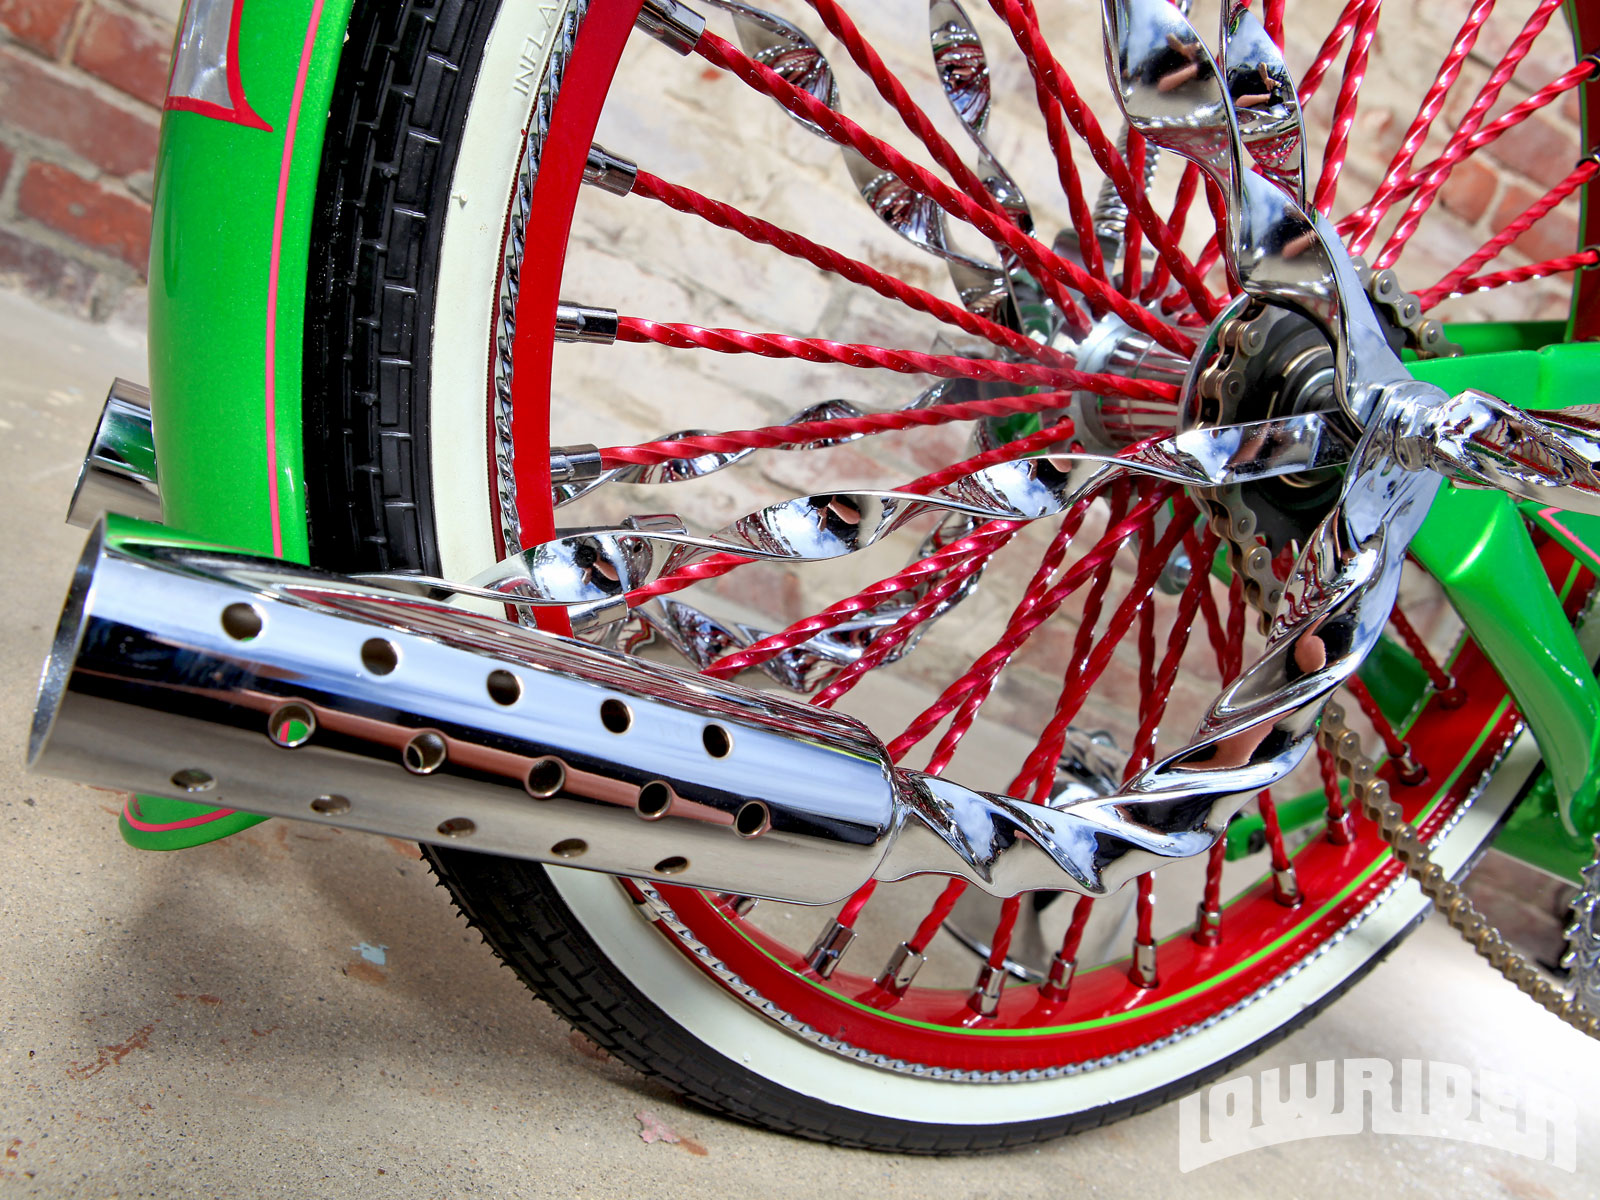 2008 Huffy Bike - Lowrider Magazine